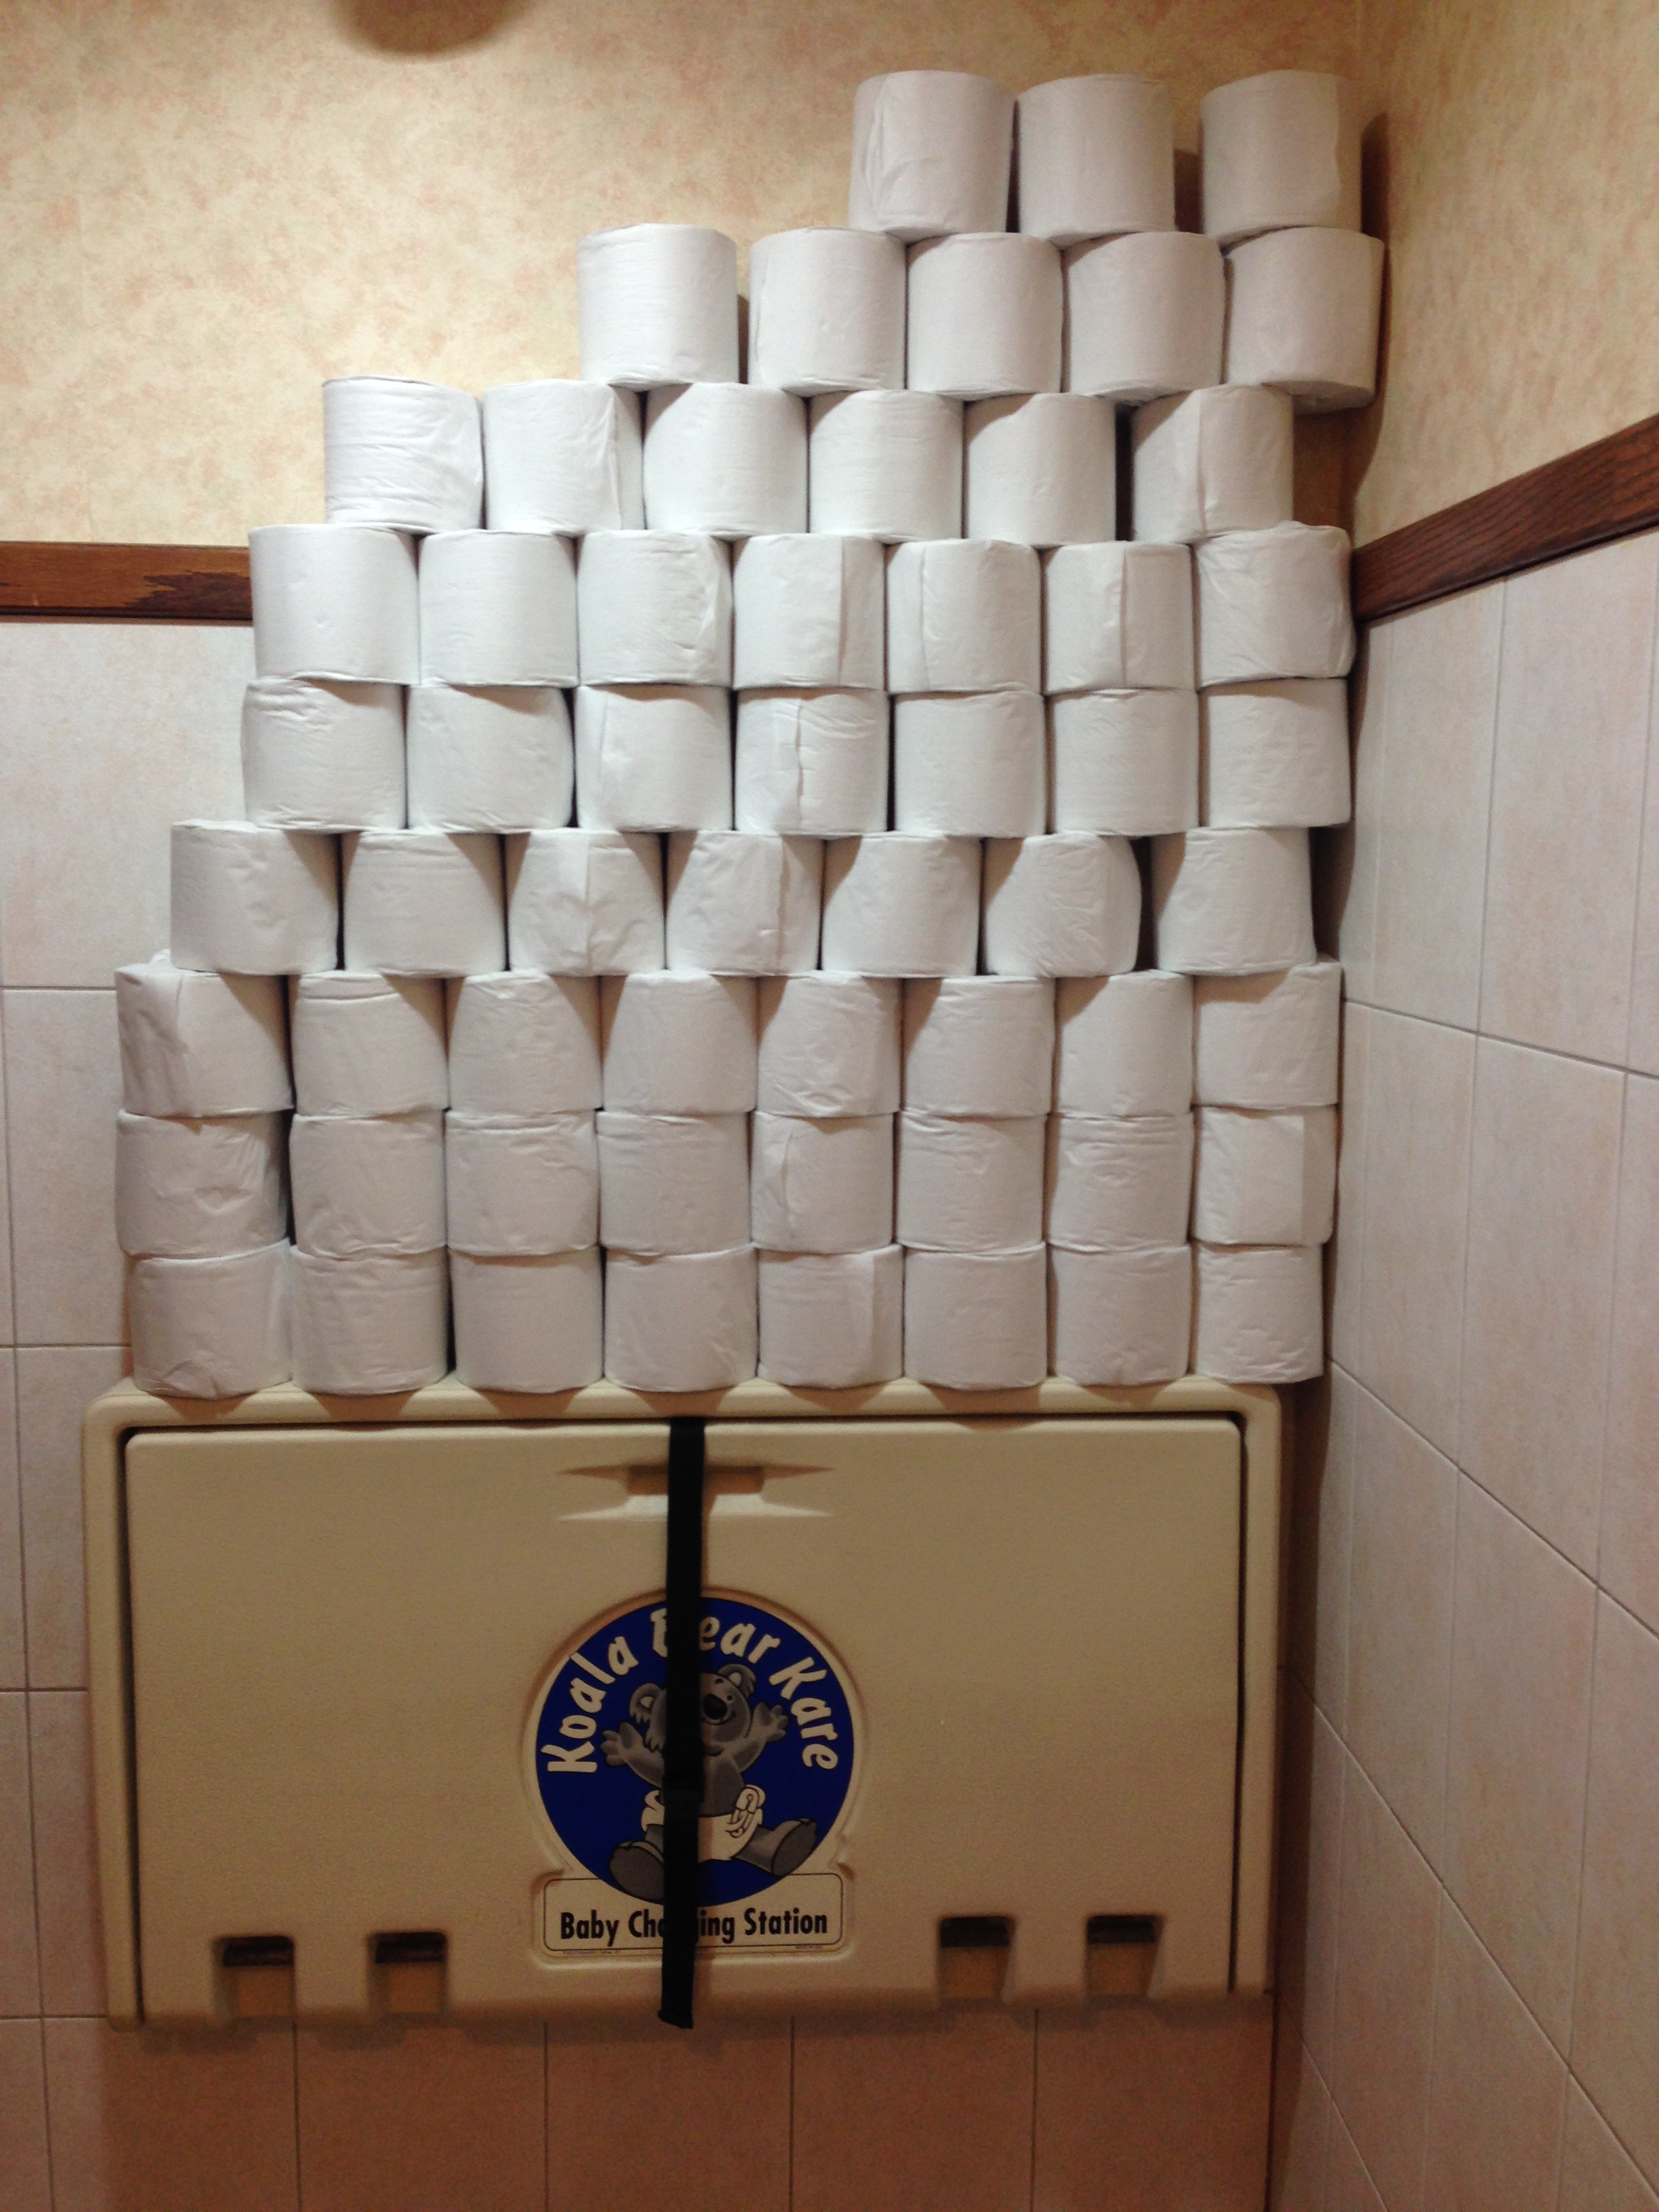 This was taken at the Lincoln Park Zoo in Chicago. I don't even know what to say about this. What the Hell where they expecting to have happen that would require this much TP?